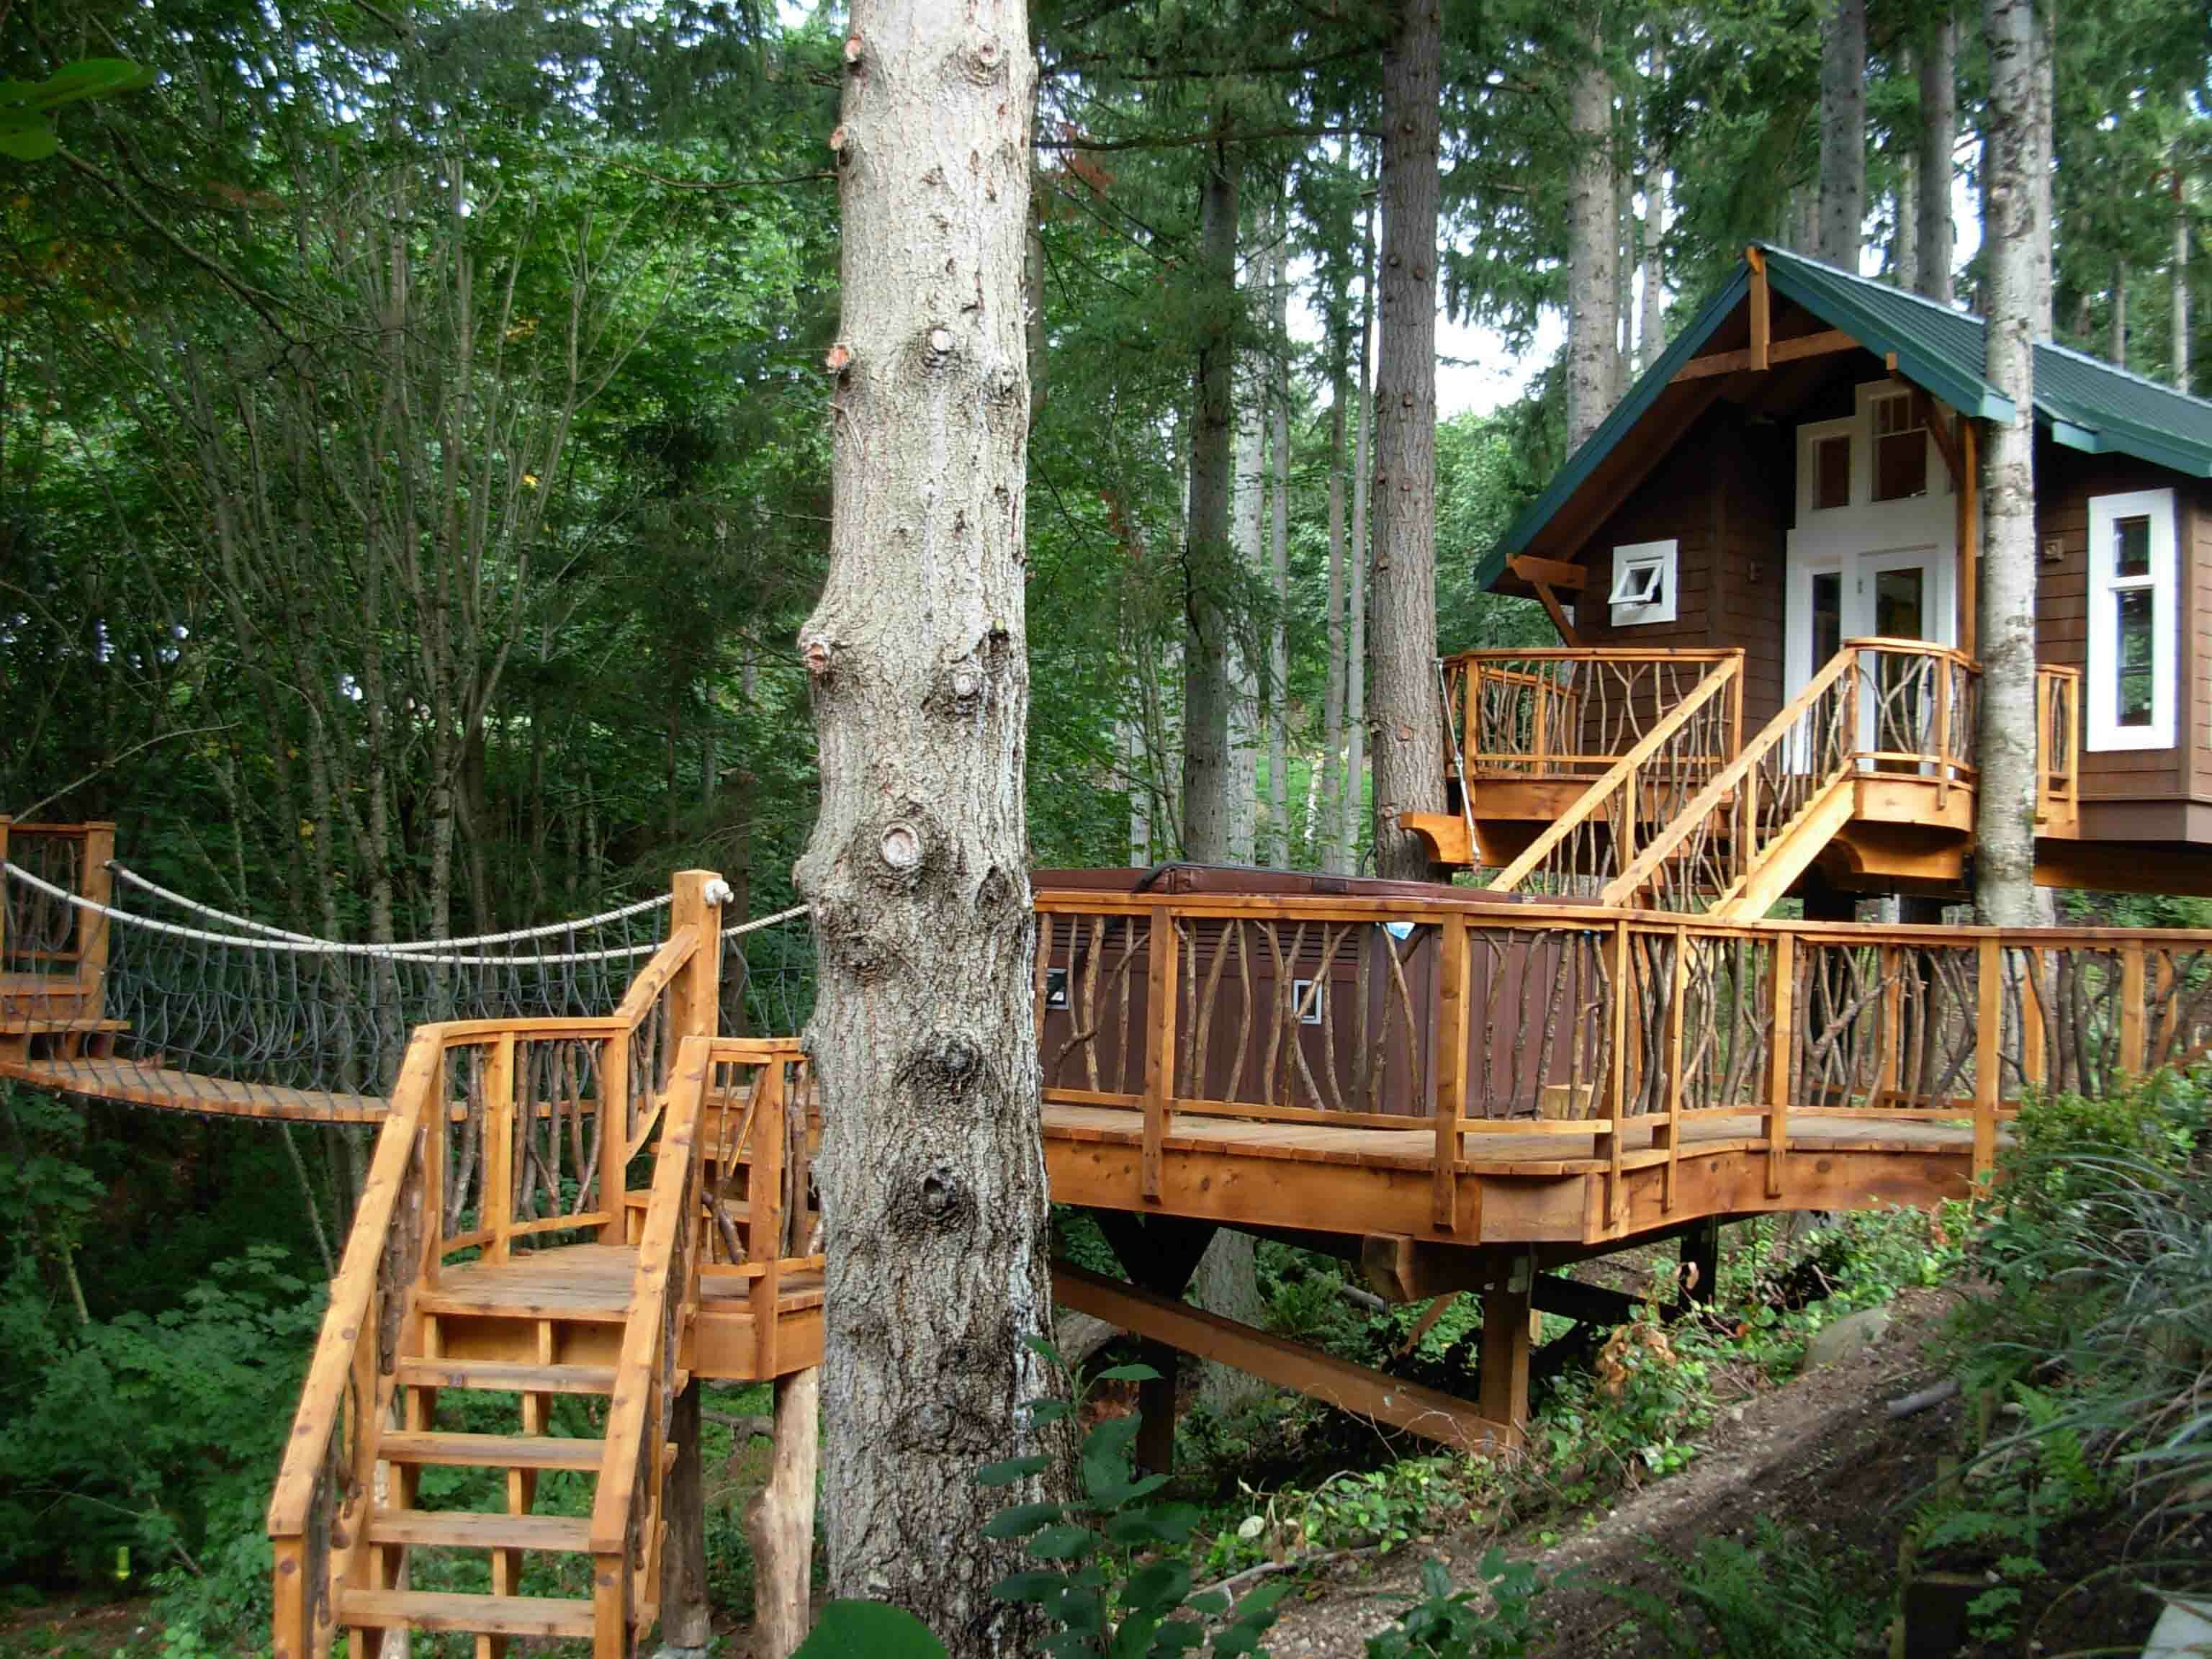 18 Amazing Tree House Designs | MostBeautifulThings on amazing flowers, crazy houses, amazing hotels, unusual houses, cool houses, tiny houses, strange houses, amazing treehouses of the world, amazing chairs, amazing pools, amazing trucks, amazing kitchens, prettiest houses, goat houses, amazing architecture, amazing bathrooms, fairy houses, awesome houses, amazing treehouse homes, amazing mansions,